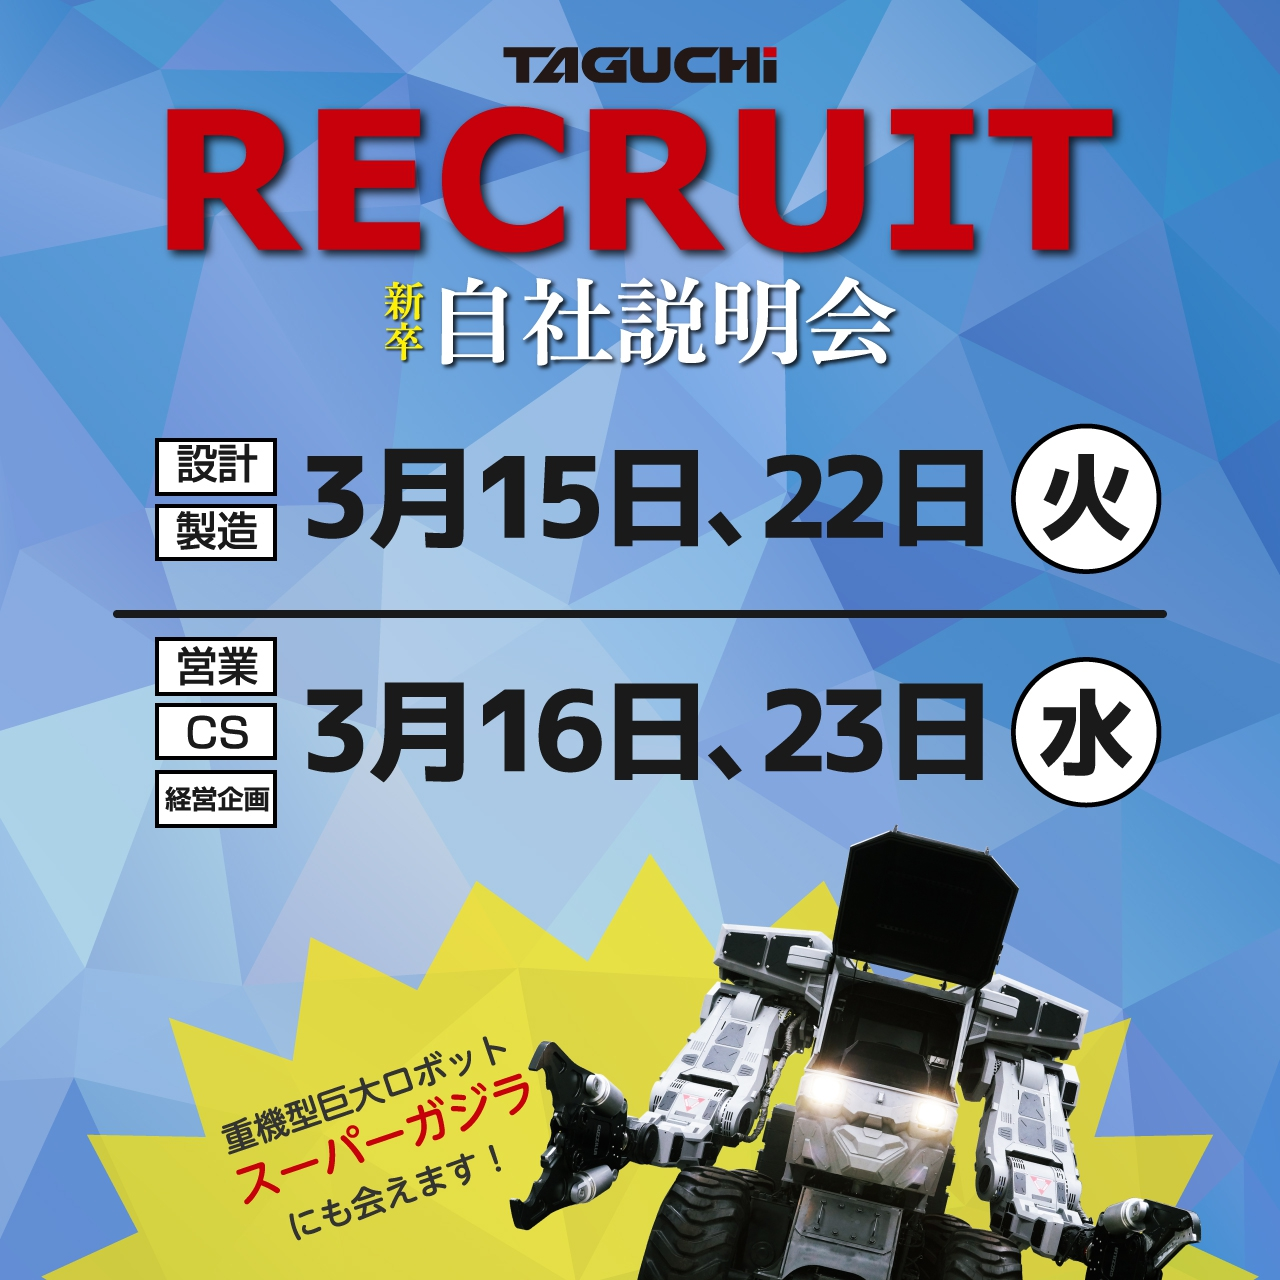 recruit_FB_20160301_13